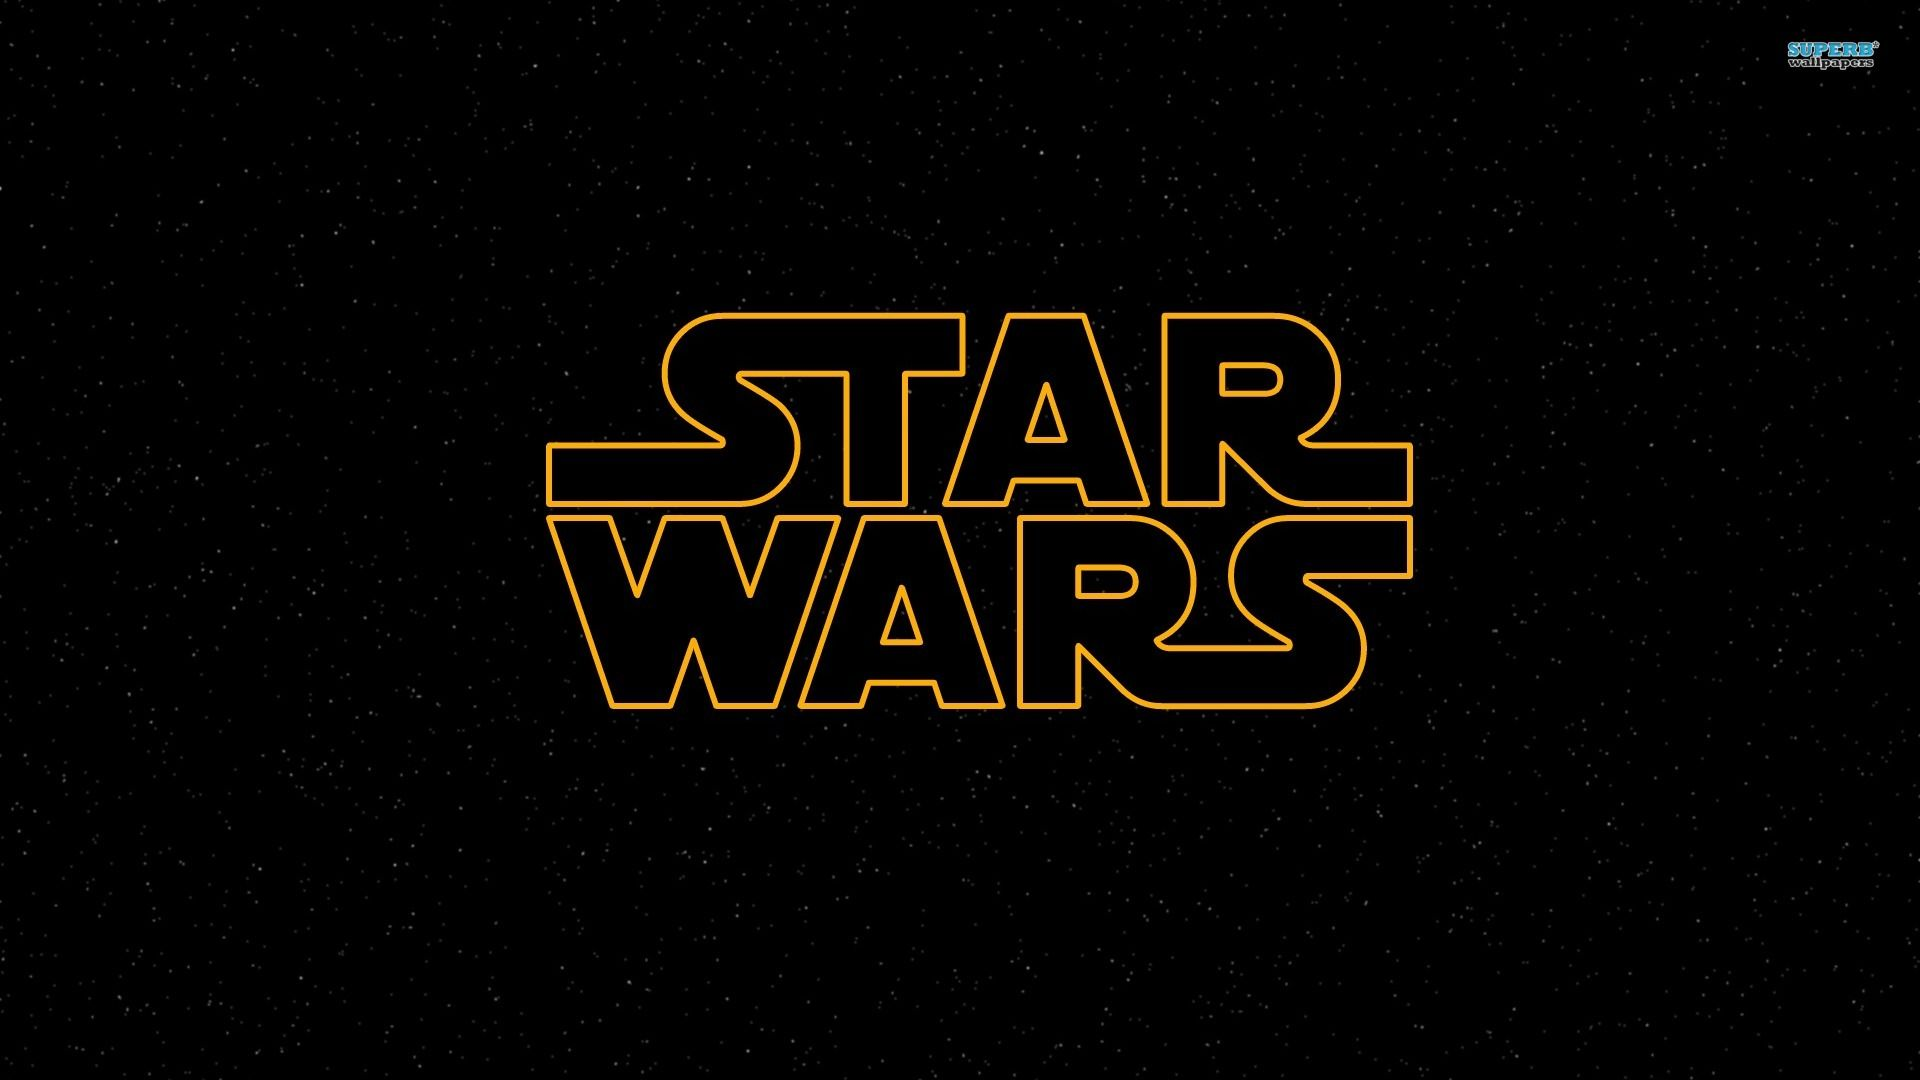 Star Wars Android Wallpaper Posted By Samantha Sellers